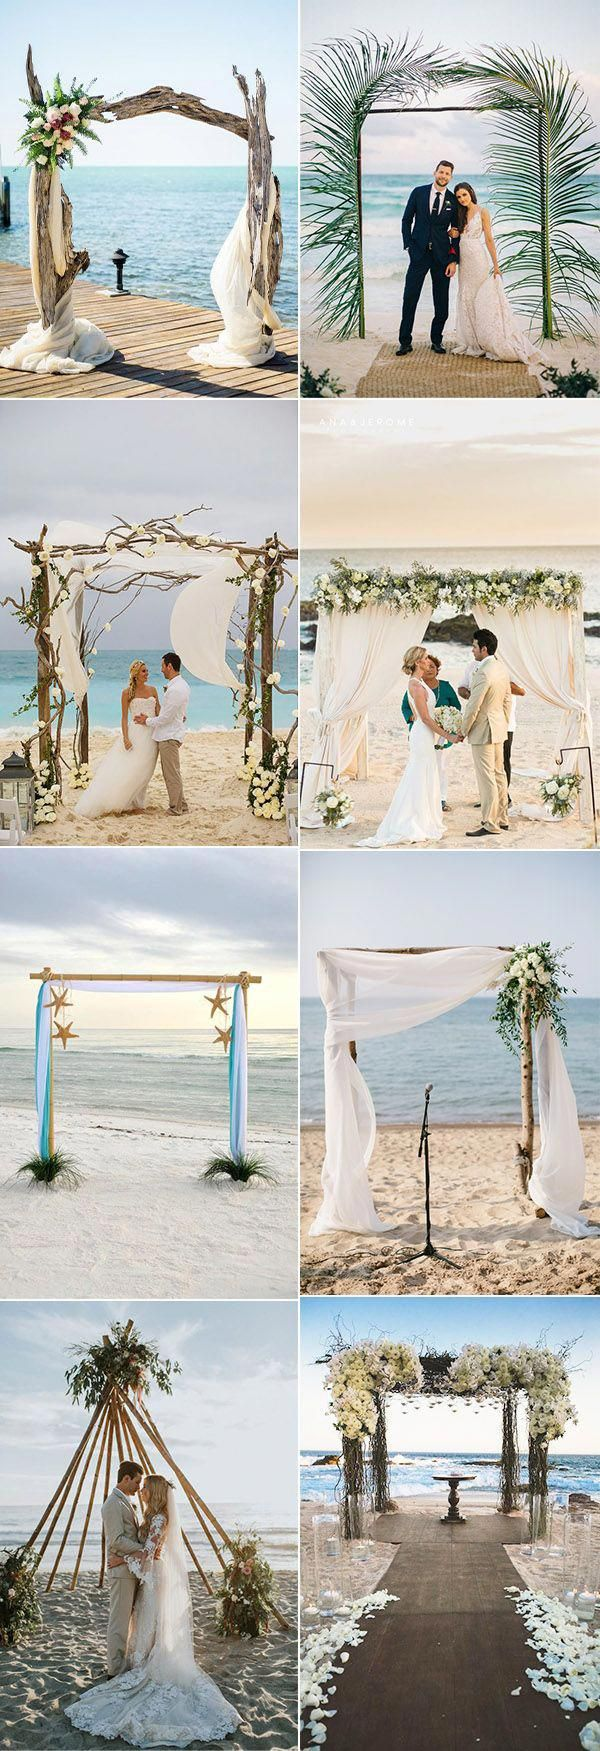 35 Gorgeous Beach Themed Wedding Ideas - Elegantweddinginvites.com Blog |  Rustic beach wedding, Beach wedding arch, Beach wedding arbors